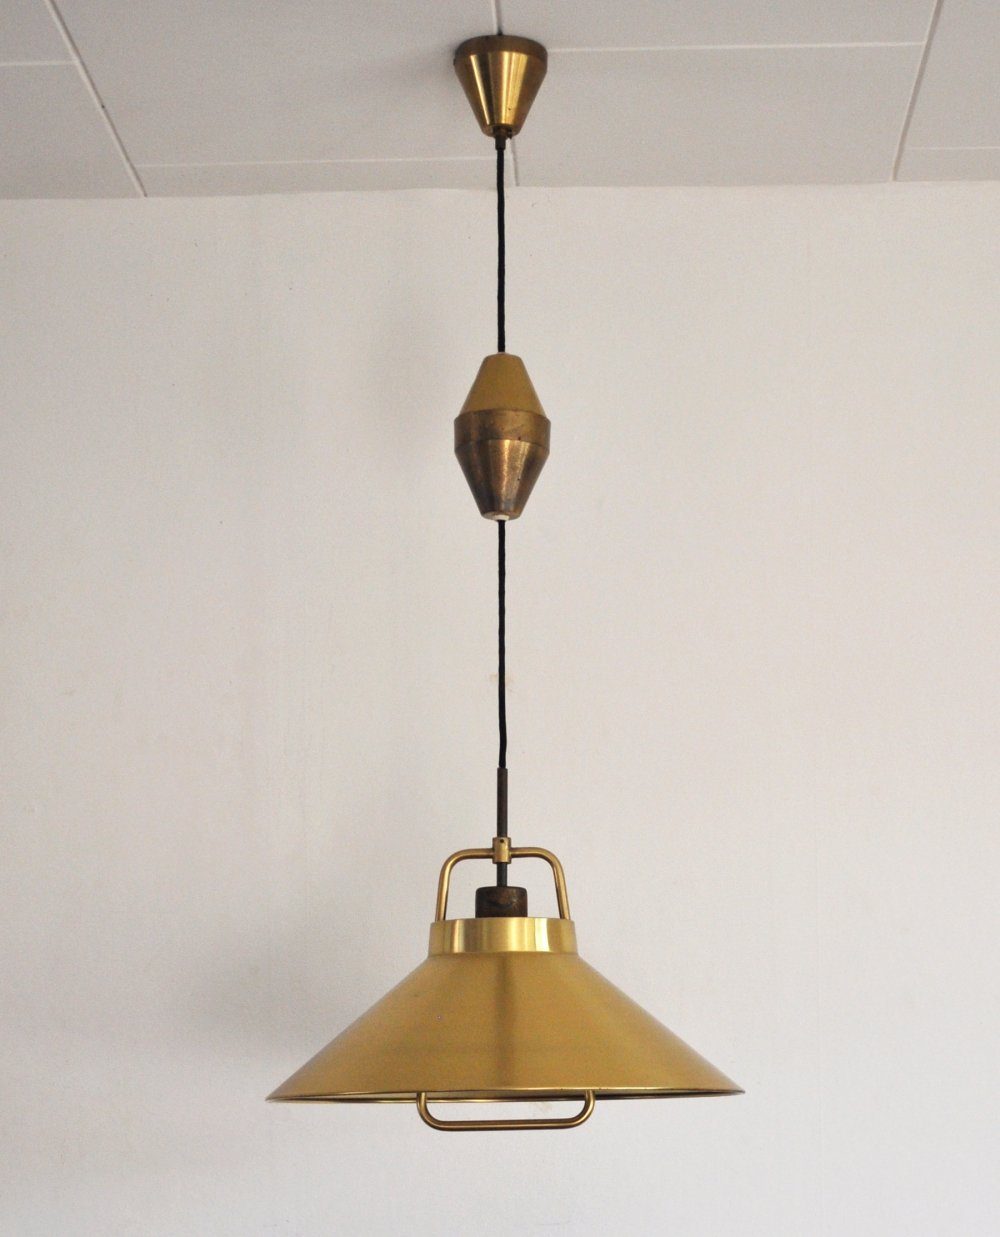 Patinated Brass Pendant by Frits Schlegel for Lyfa, Denmark 1960s